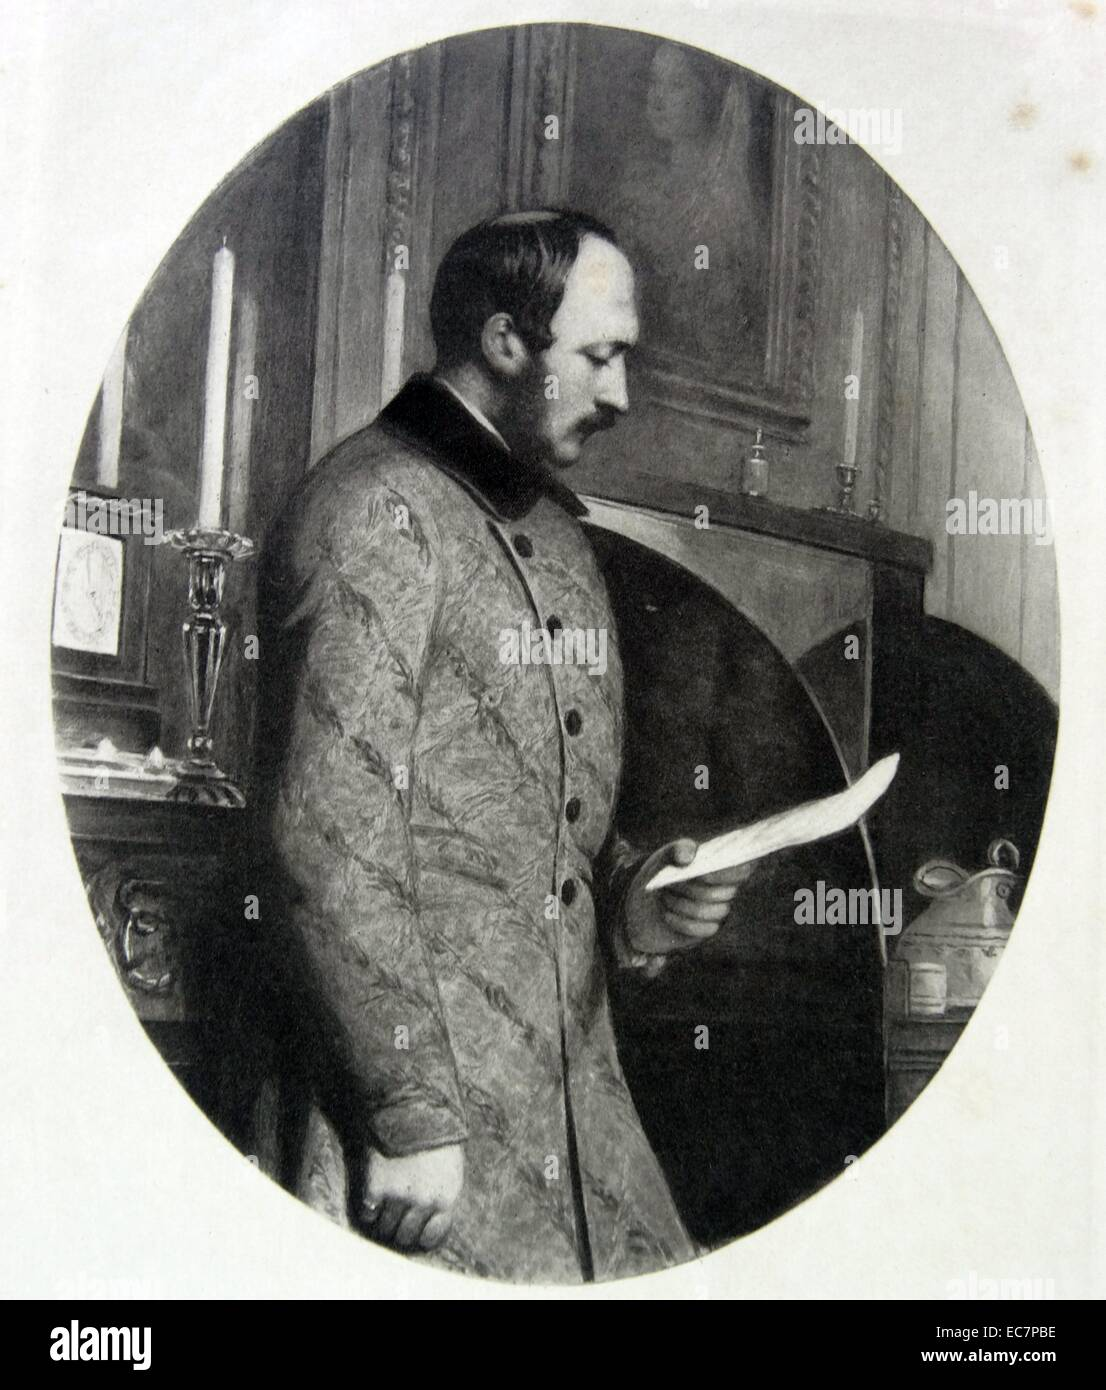 Prince Albert the Prince Consort and husband of Queen Victoria in 1862 - Stock Image